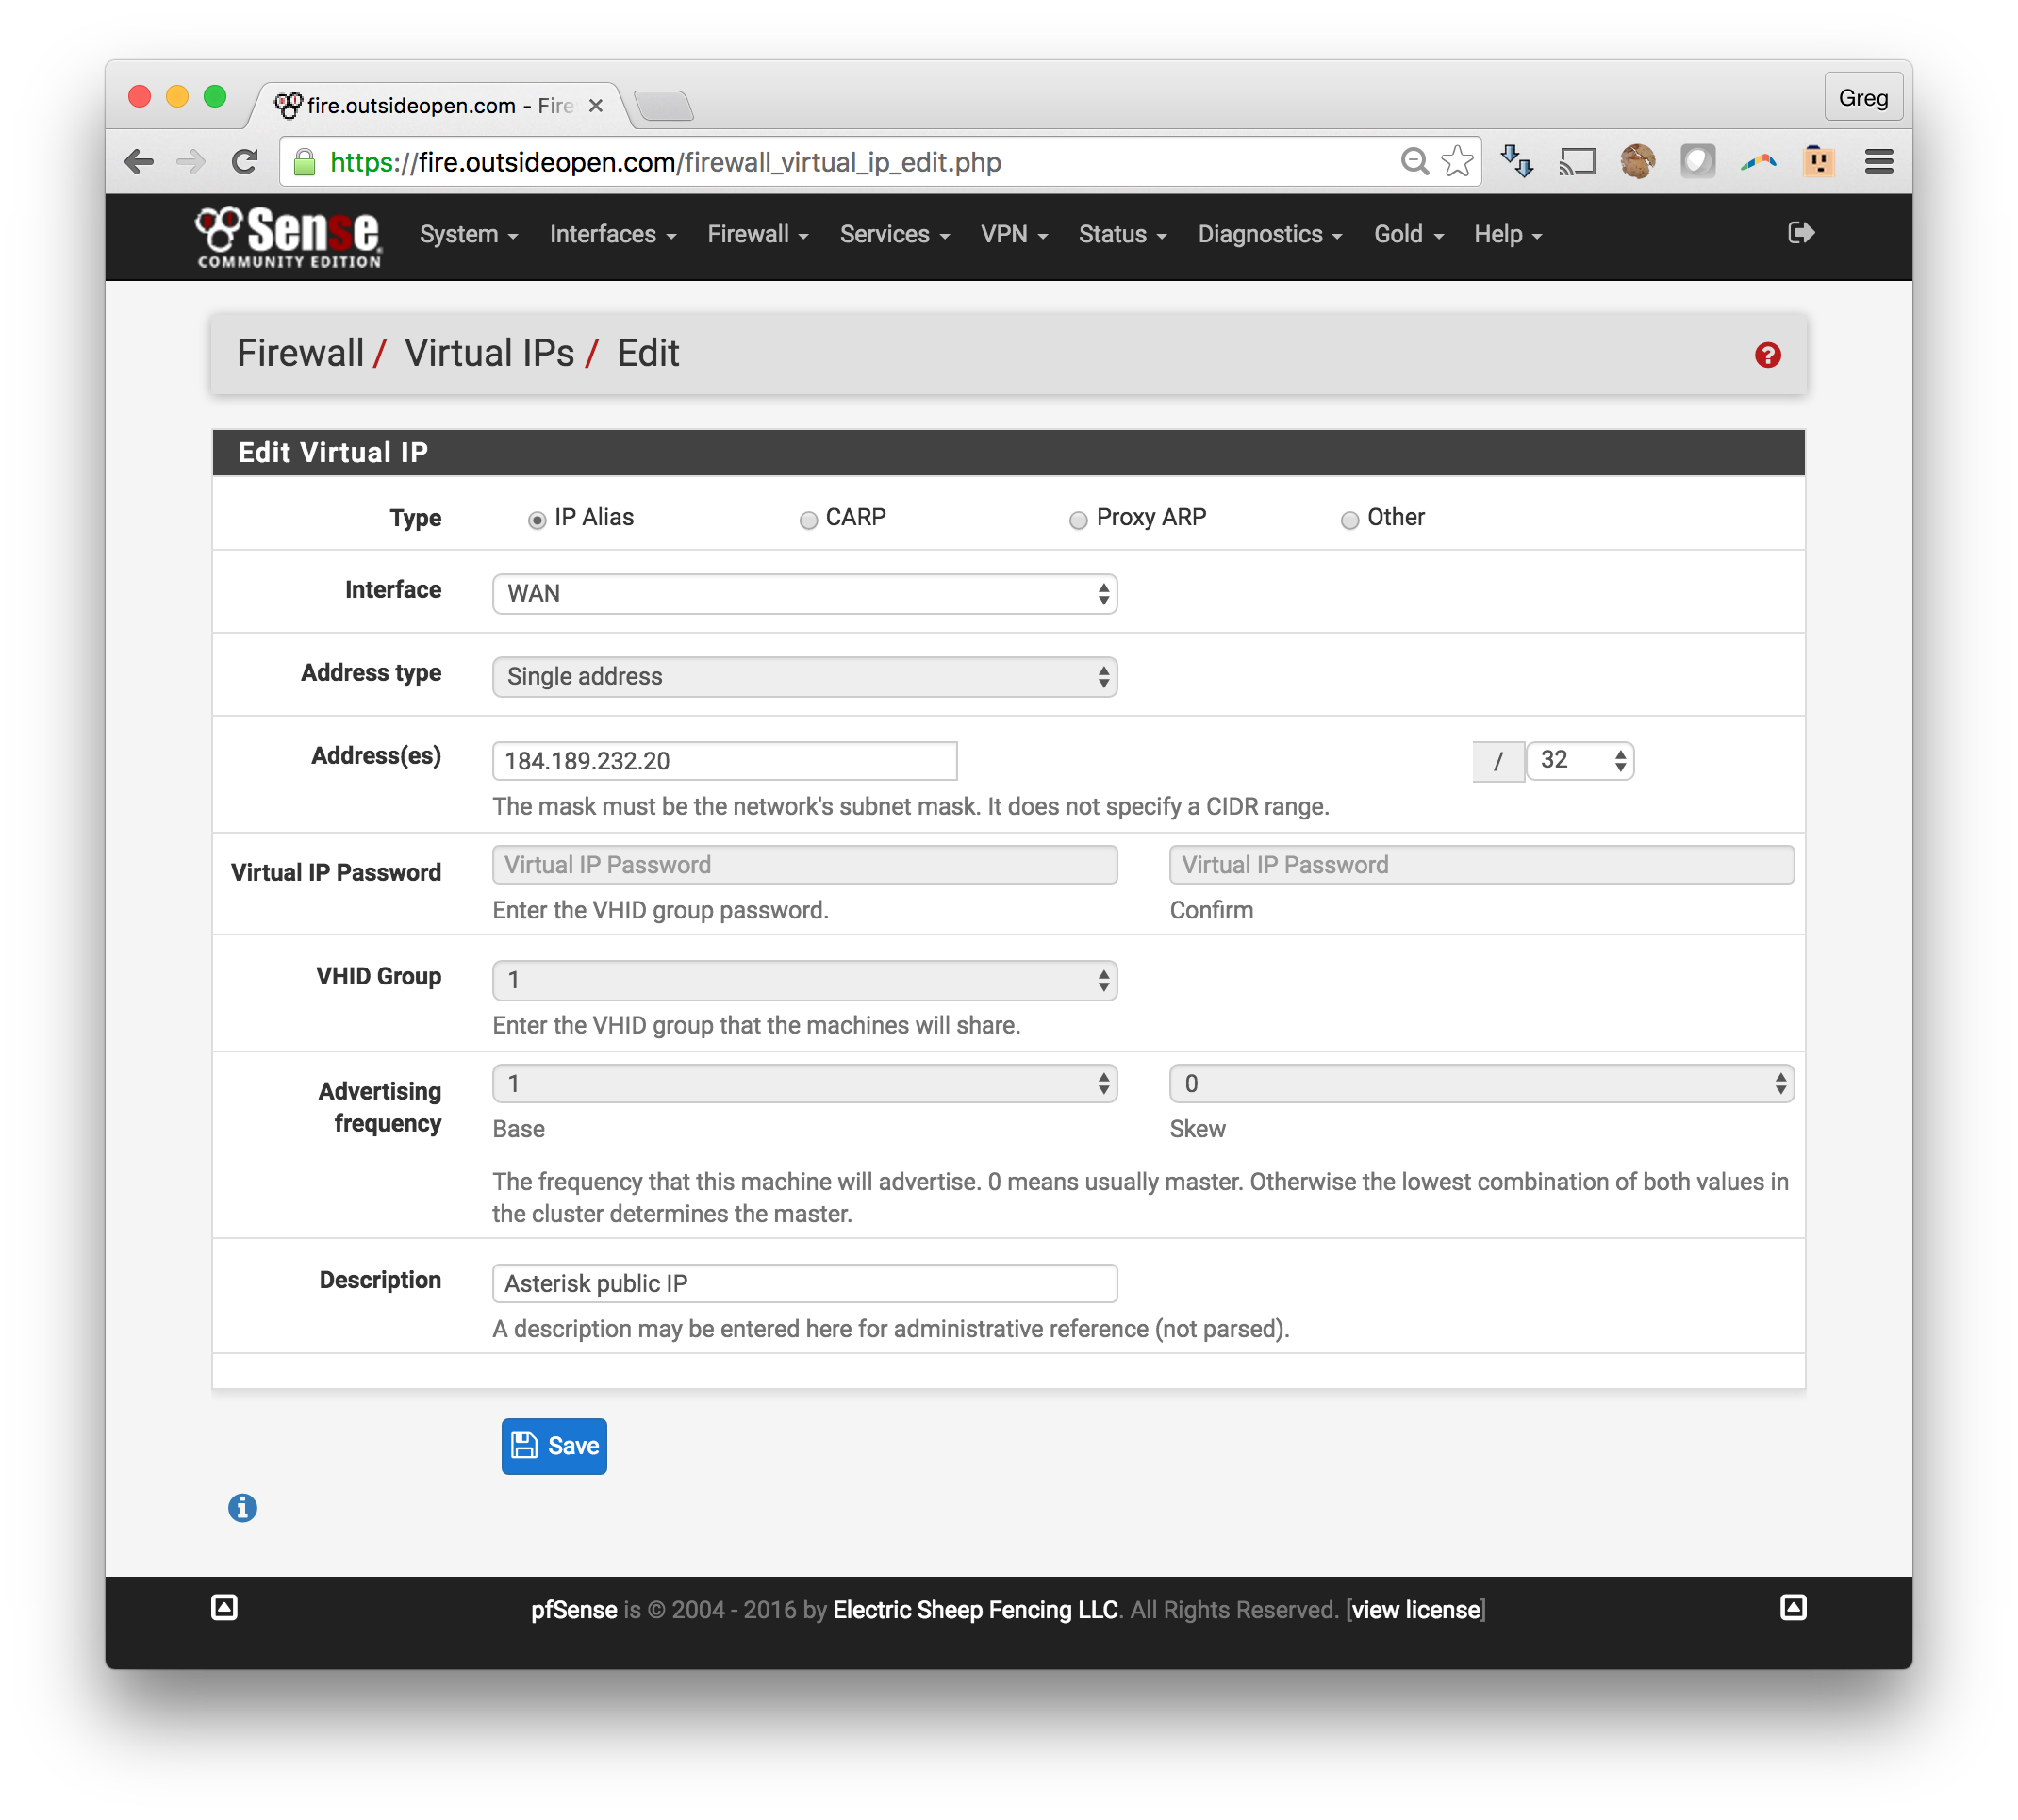 pfSense port settings for Asterisk FreePBX - Outside Open